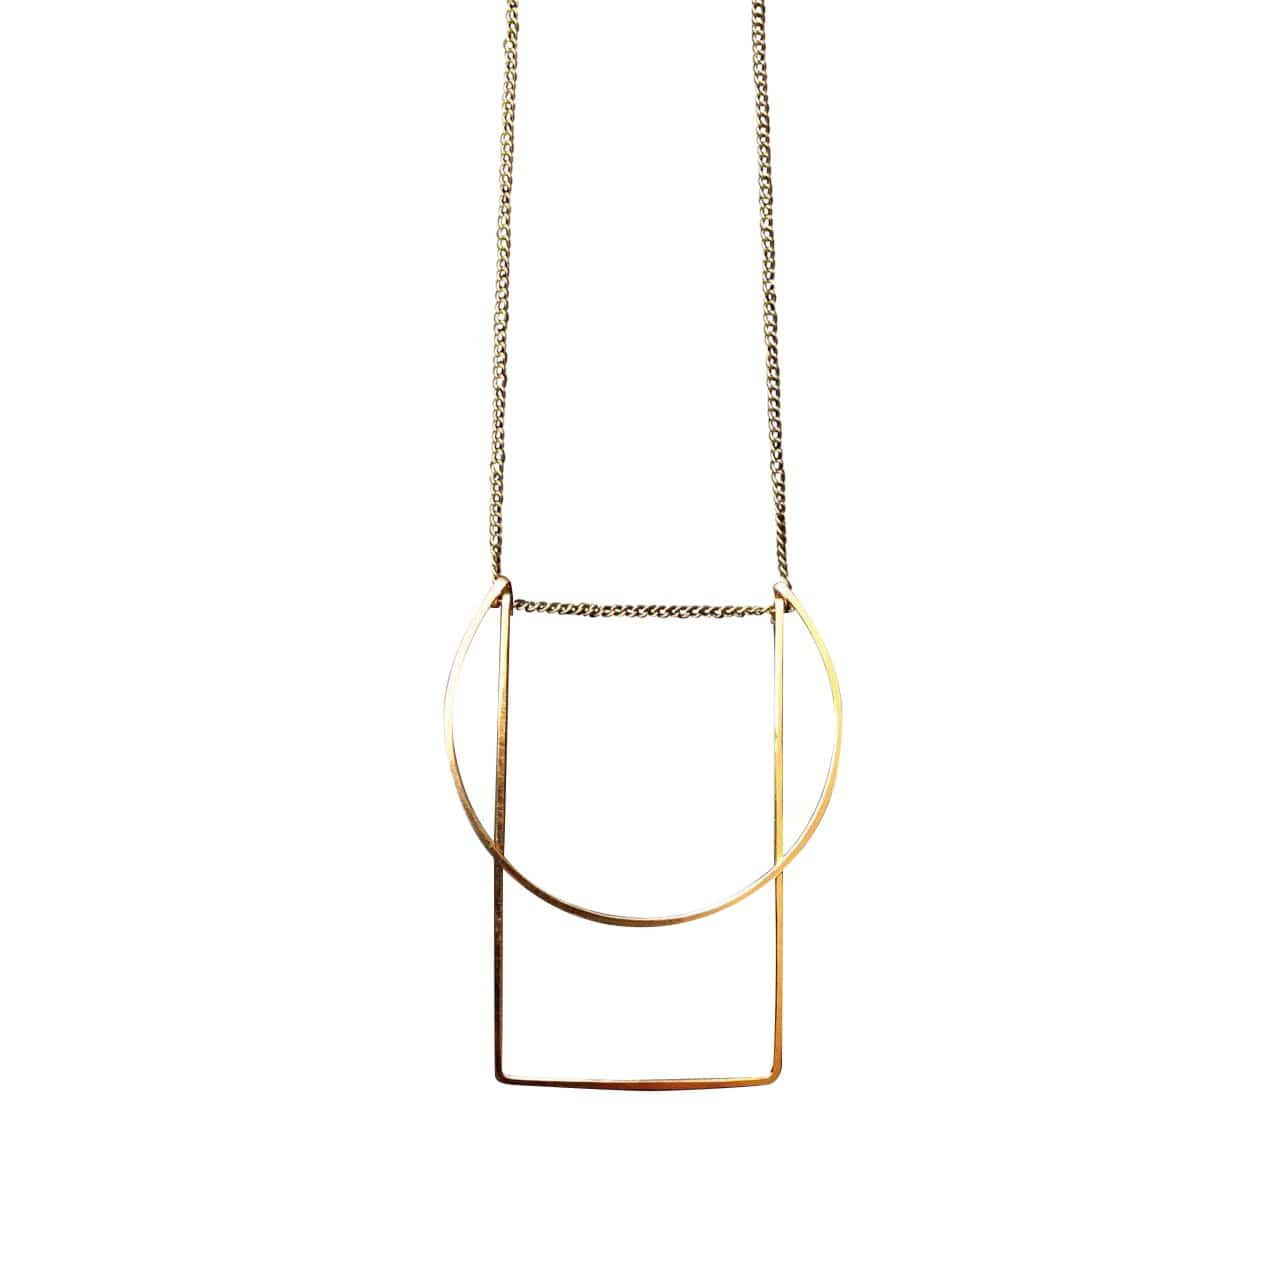 L.Greenwalt Jewelry Necklaces Morning Geometric Necklace